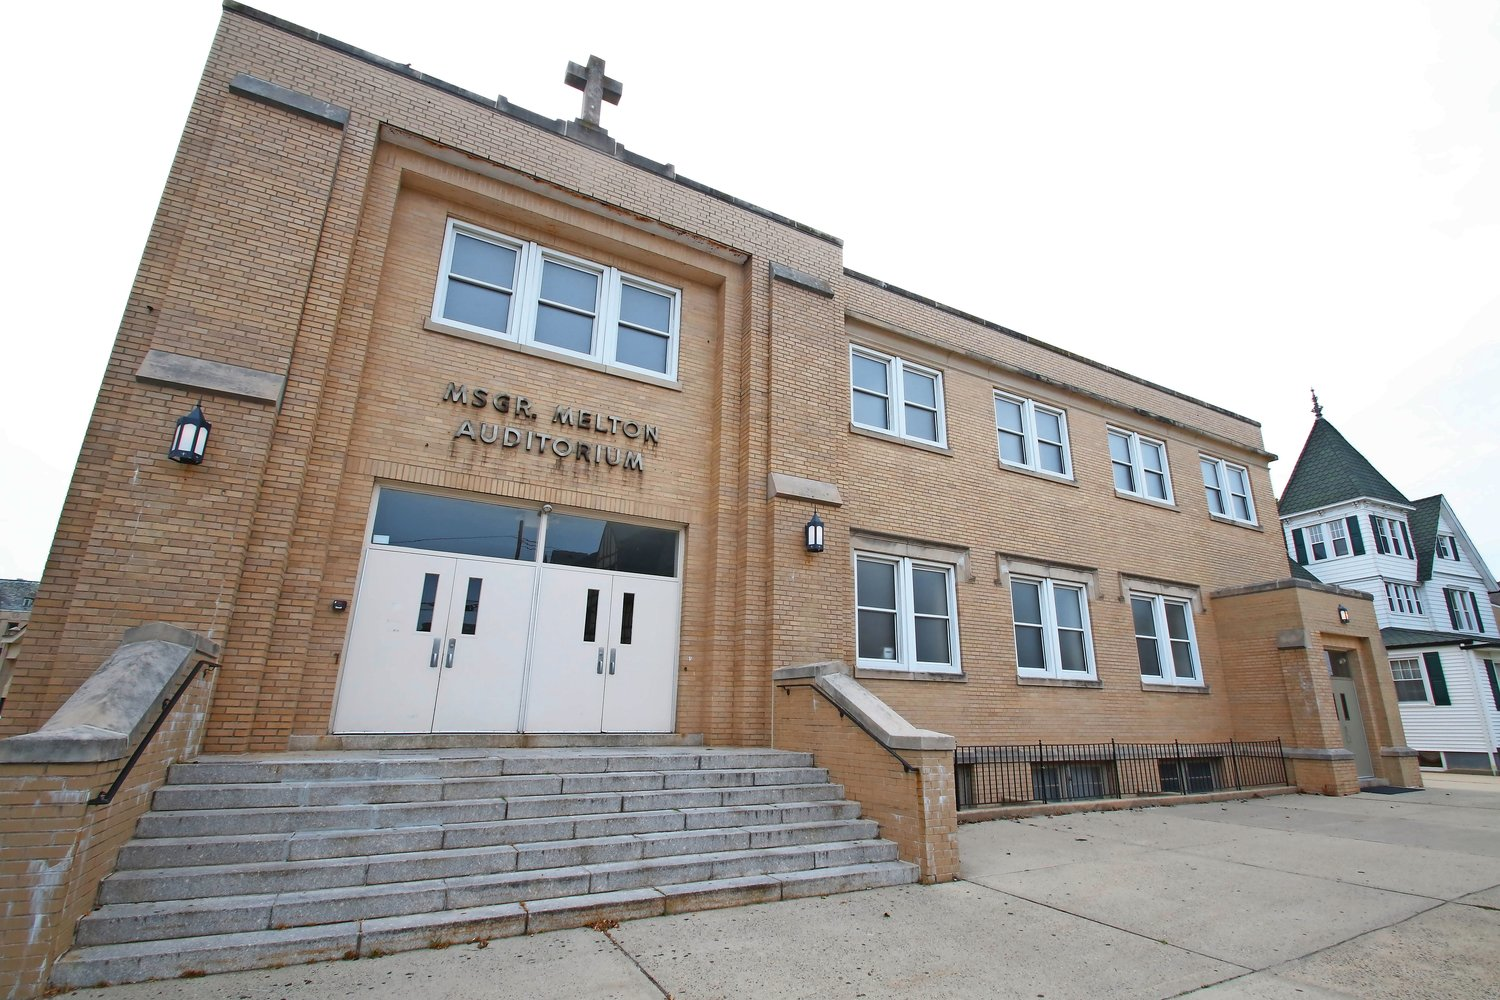 The auditorium at St. Agnes is named after the late Melton, who was one of three clergy accused of sexual abuse last week.